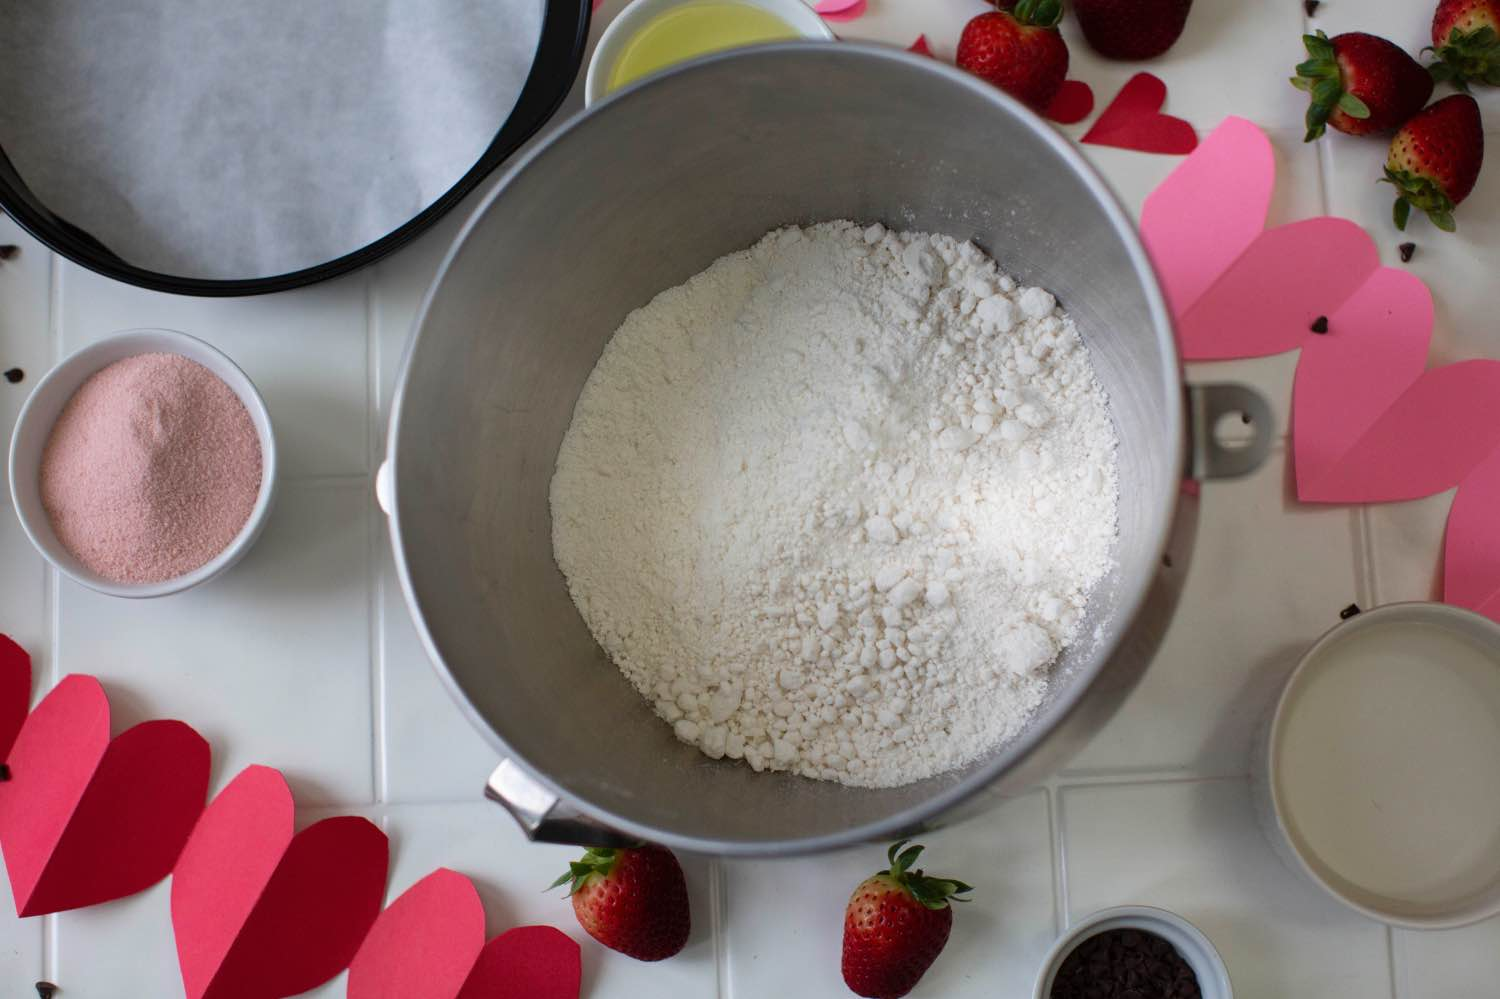 add the dry cake ingredients to a kitchen aid mixer